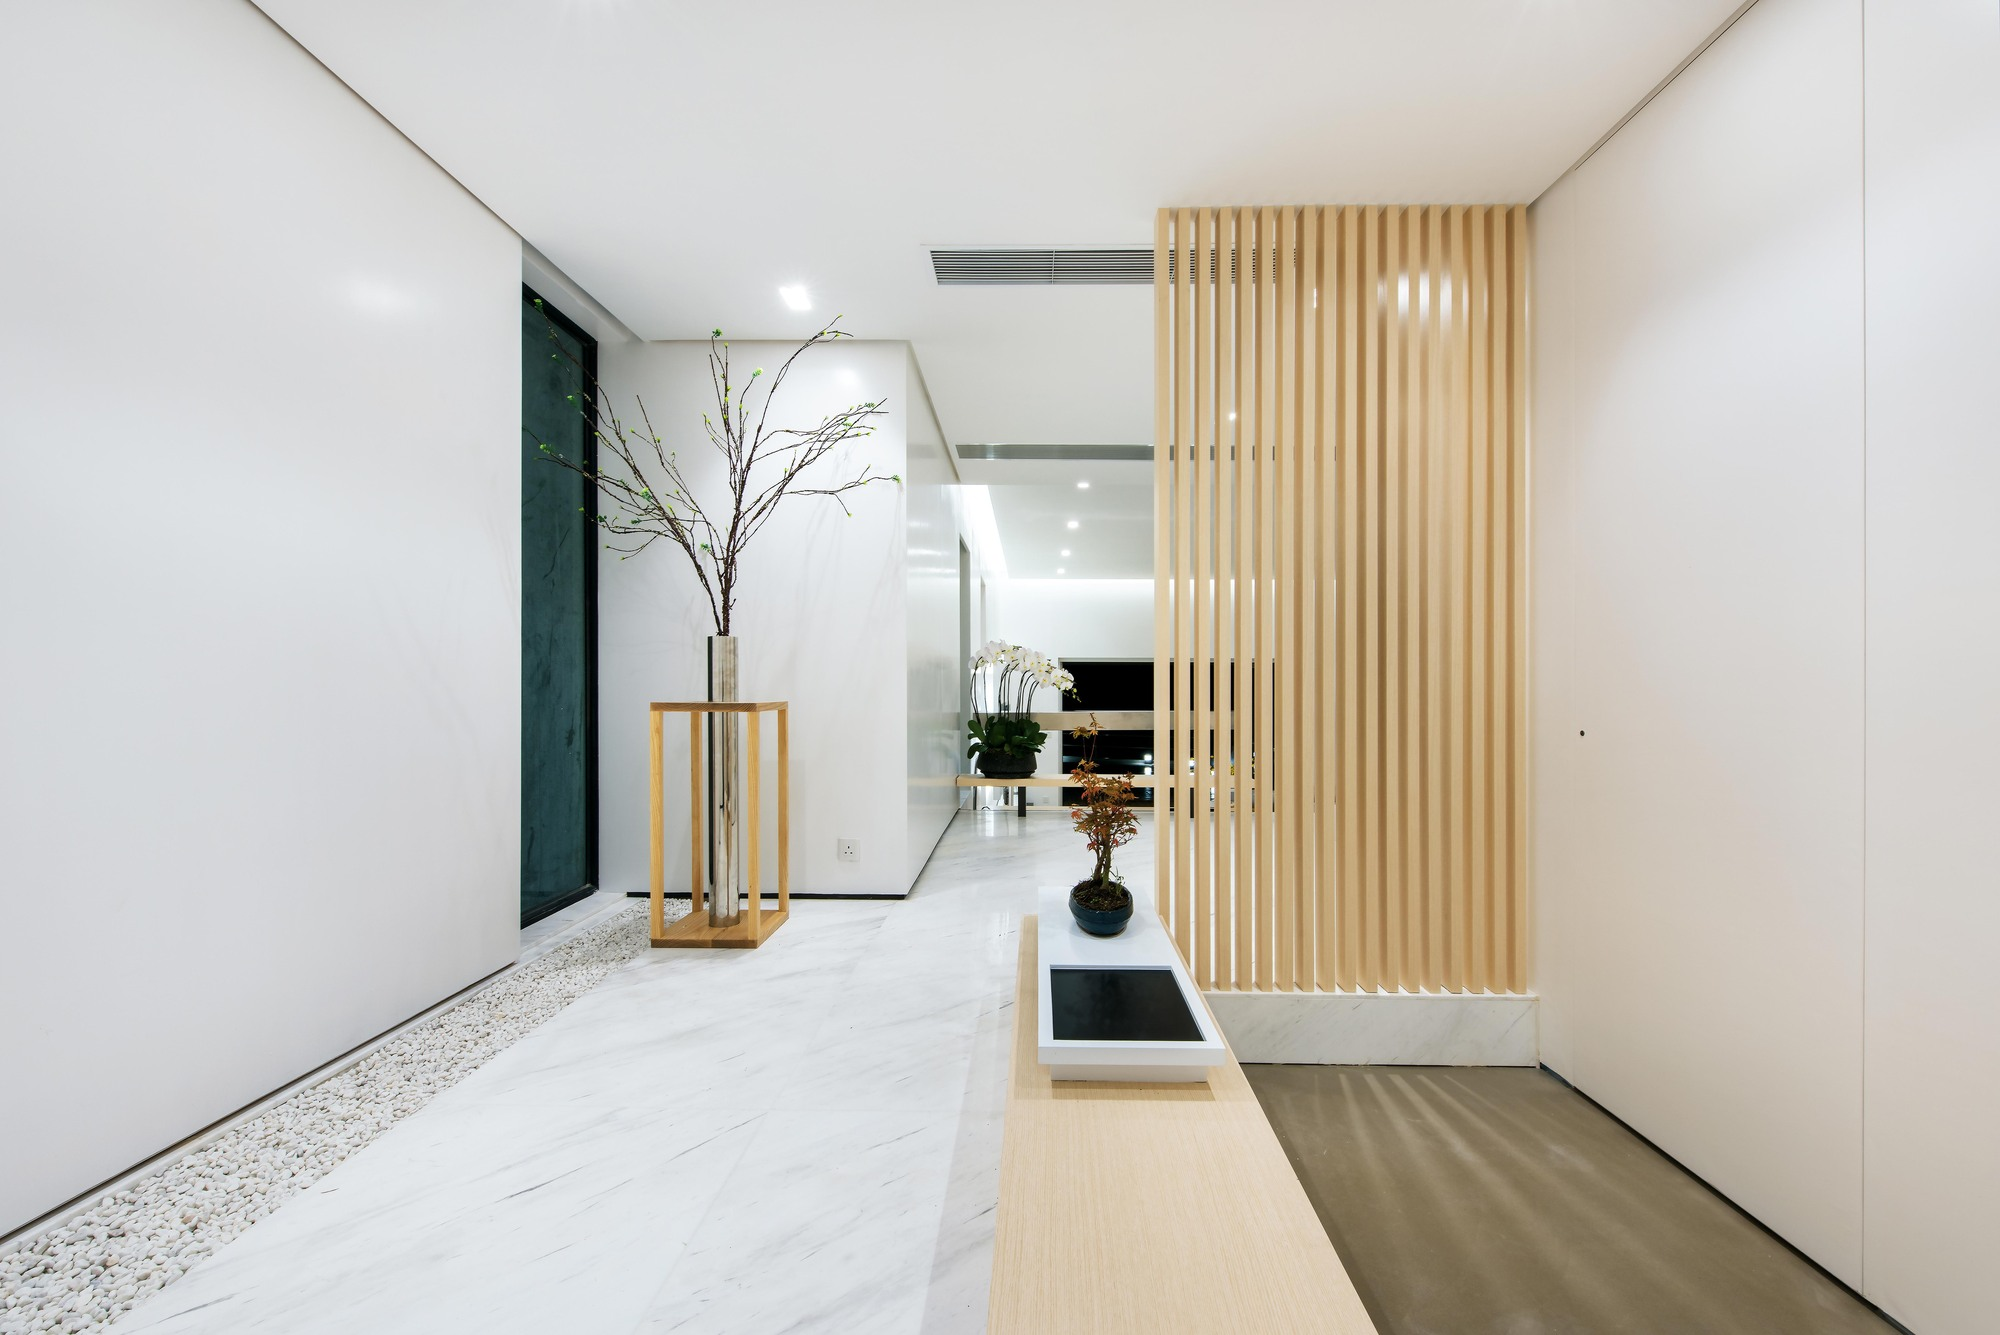 House in silverstrand millimeter interior design archdaily for Interior designs of the house